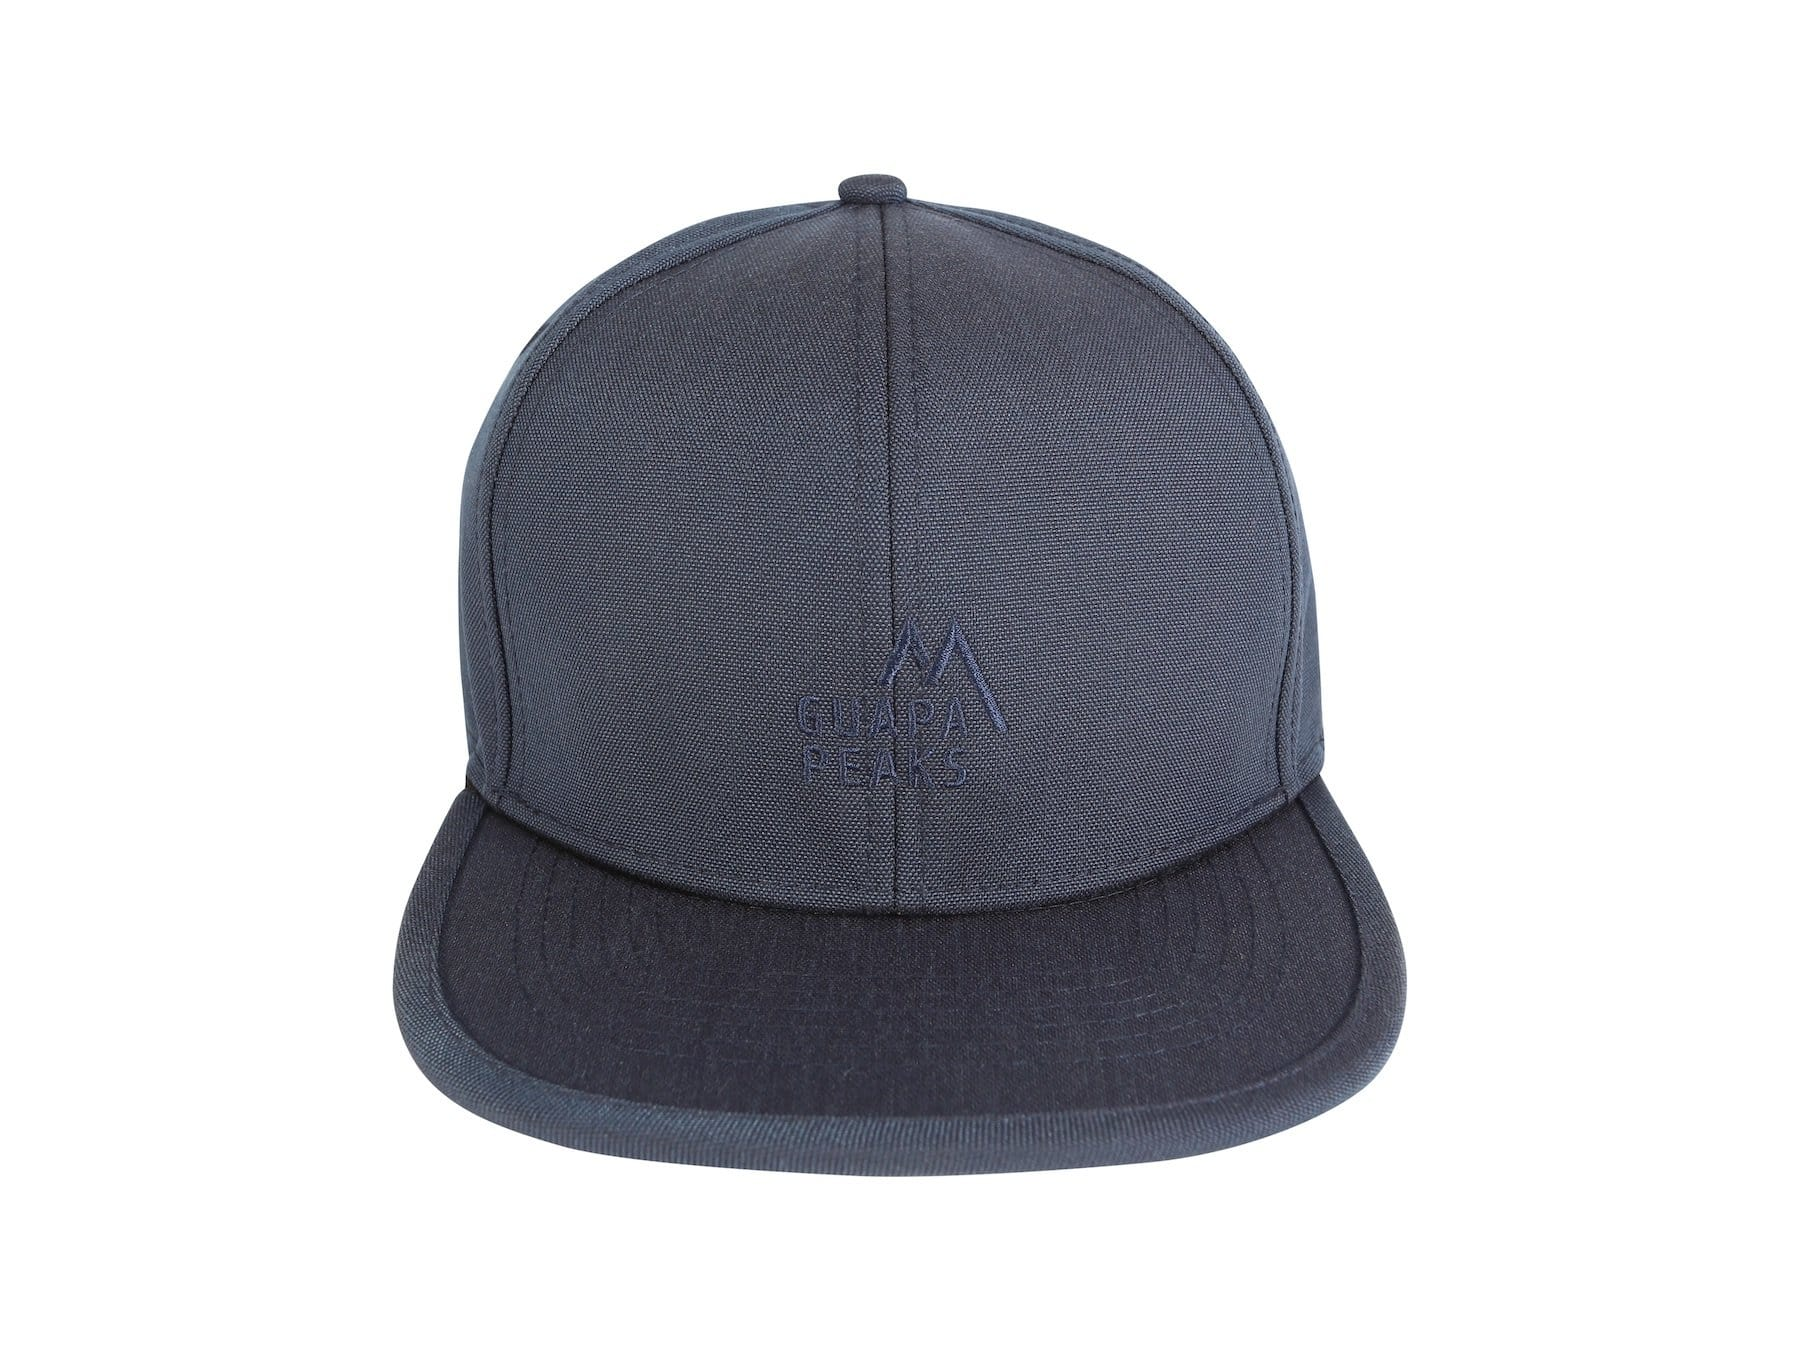 Navy 6 Panel Cap Set | Walnut Wood + Free Fabric Visor